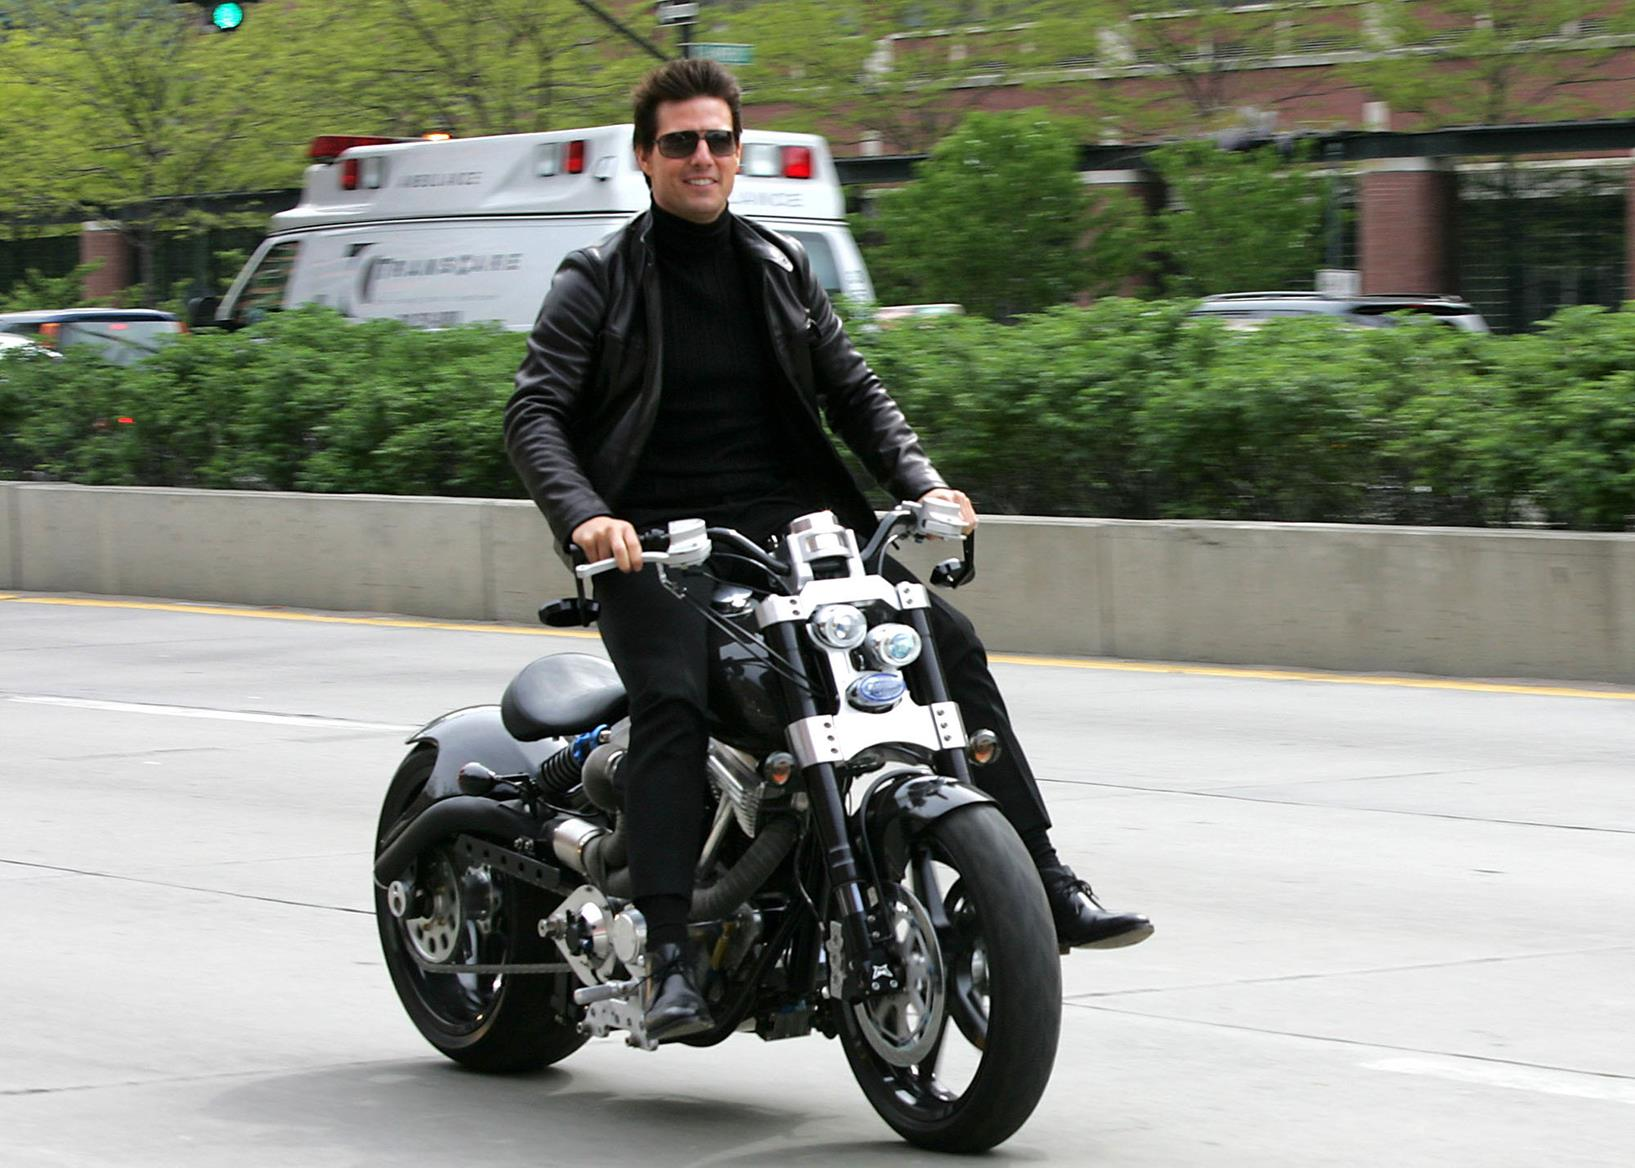 Cruise rode a Confederate Hellcat to the Mission: Impossible 3 premiere